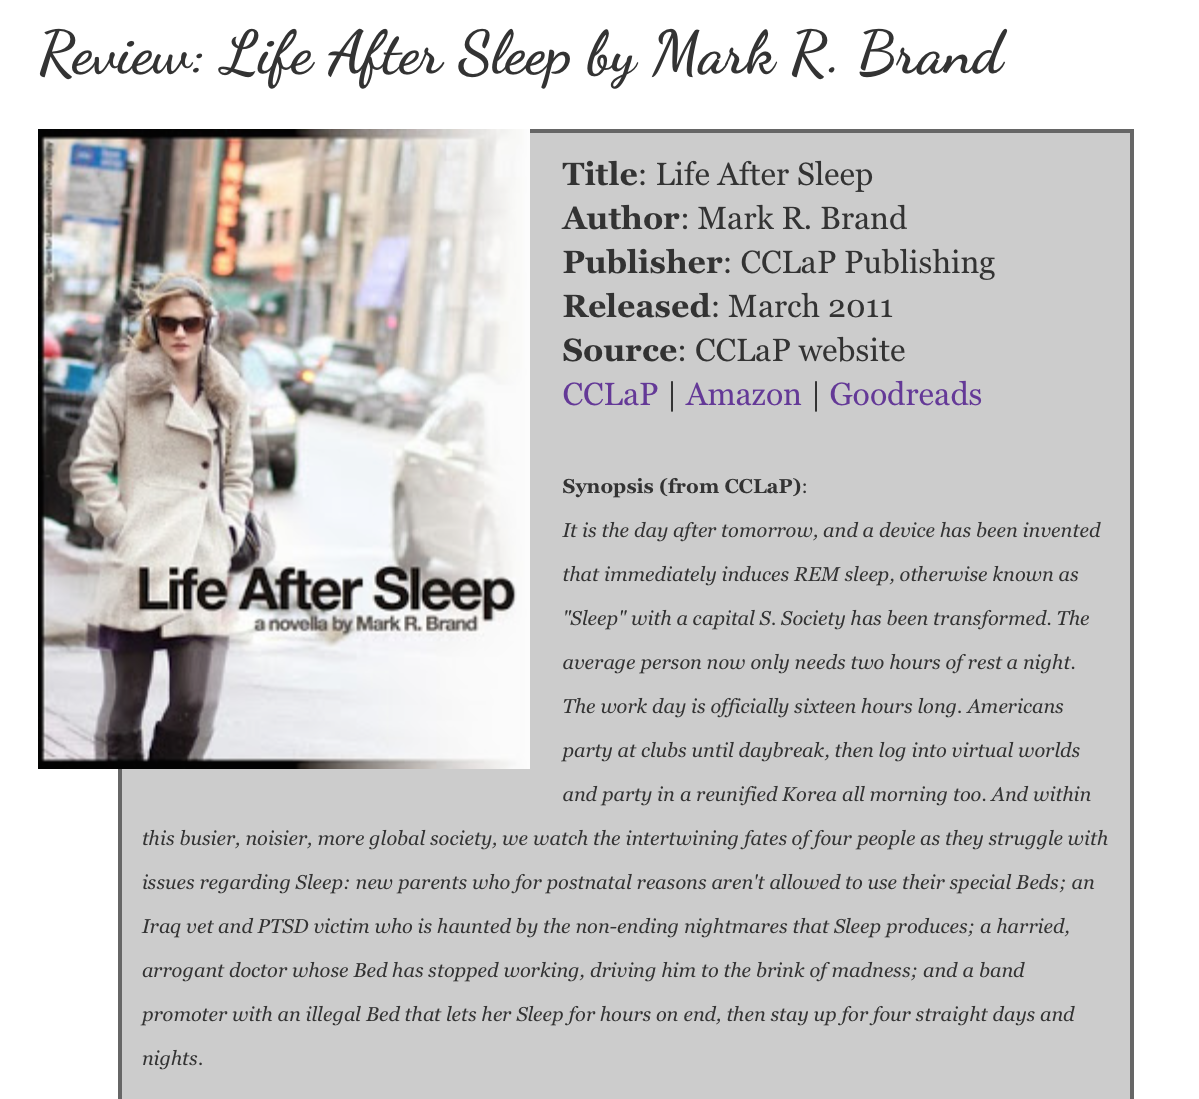 http://www.lovelybookshelf.com/2013/11/review-life-after-sleep-by-mark-r-brand.html